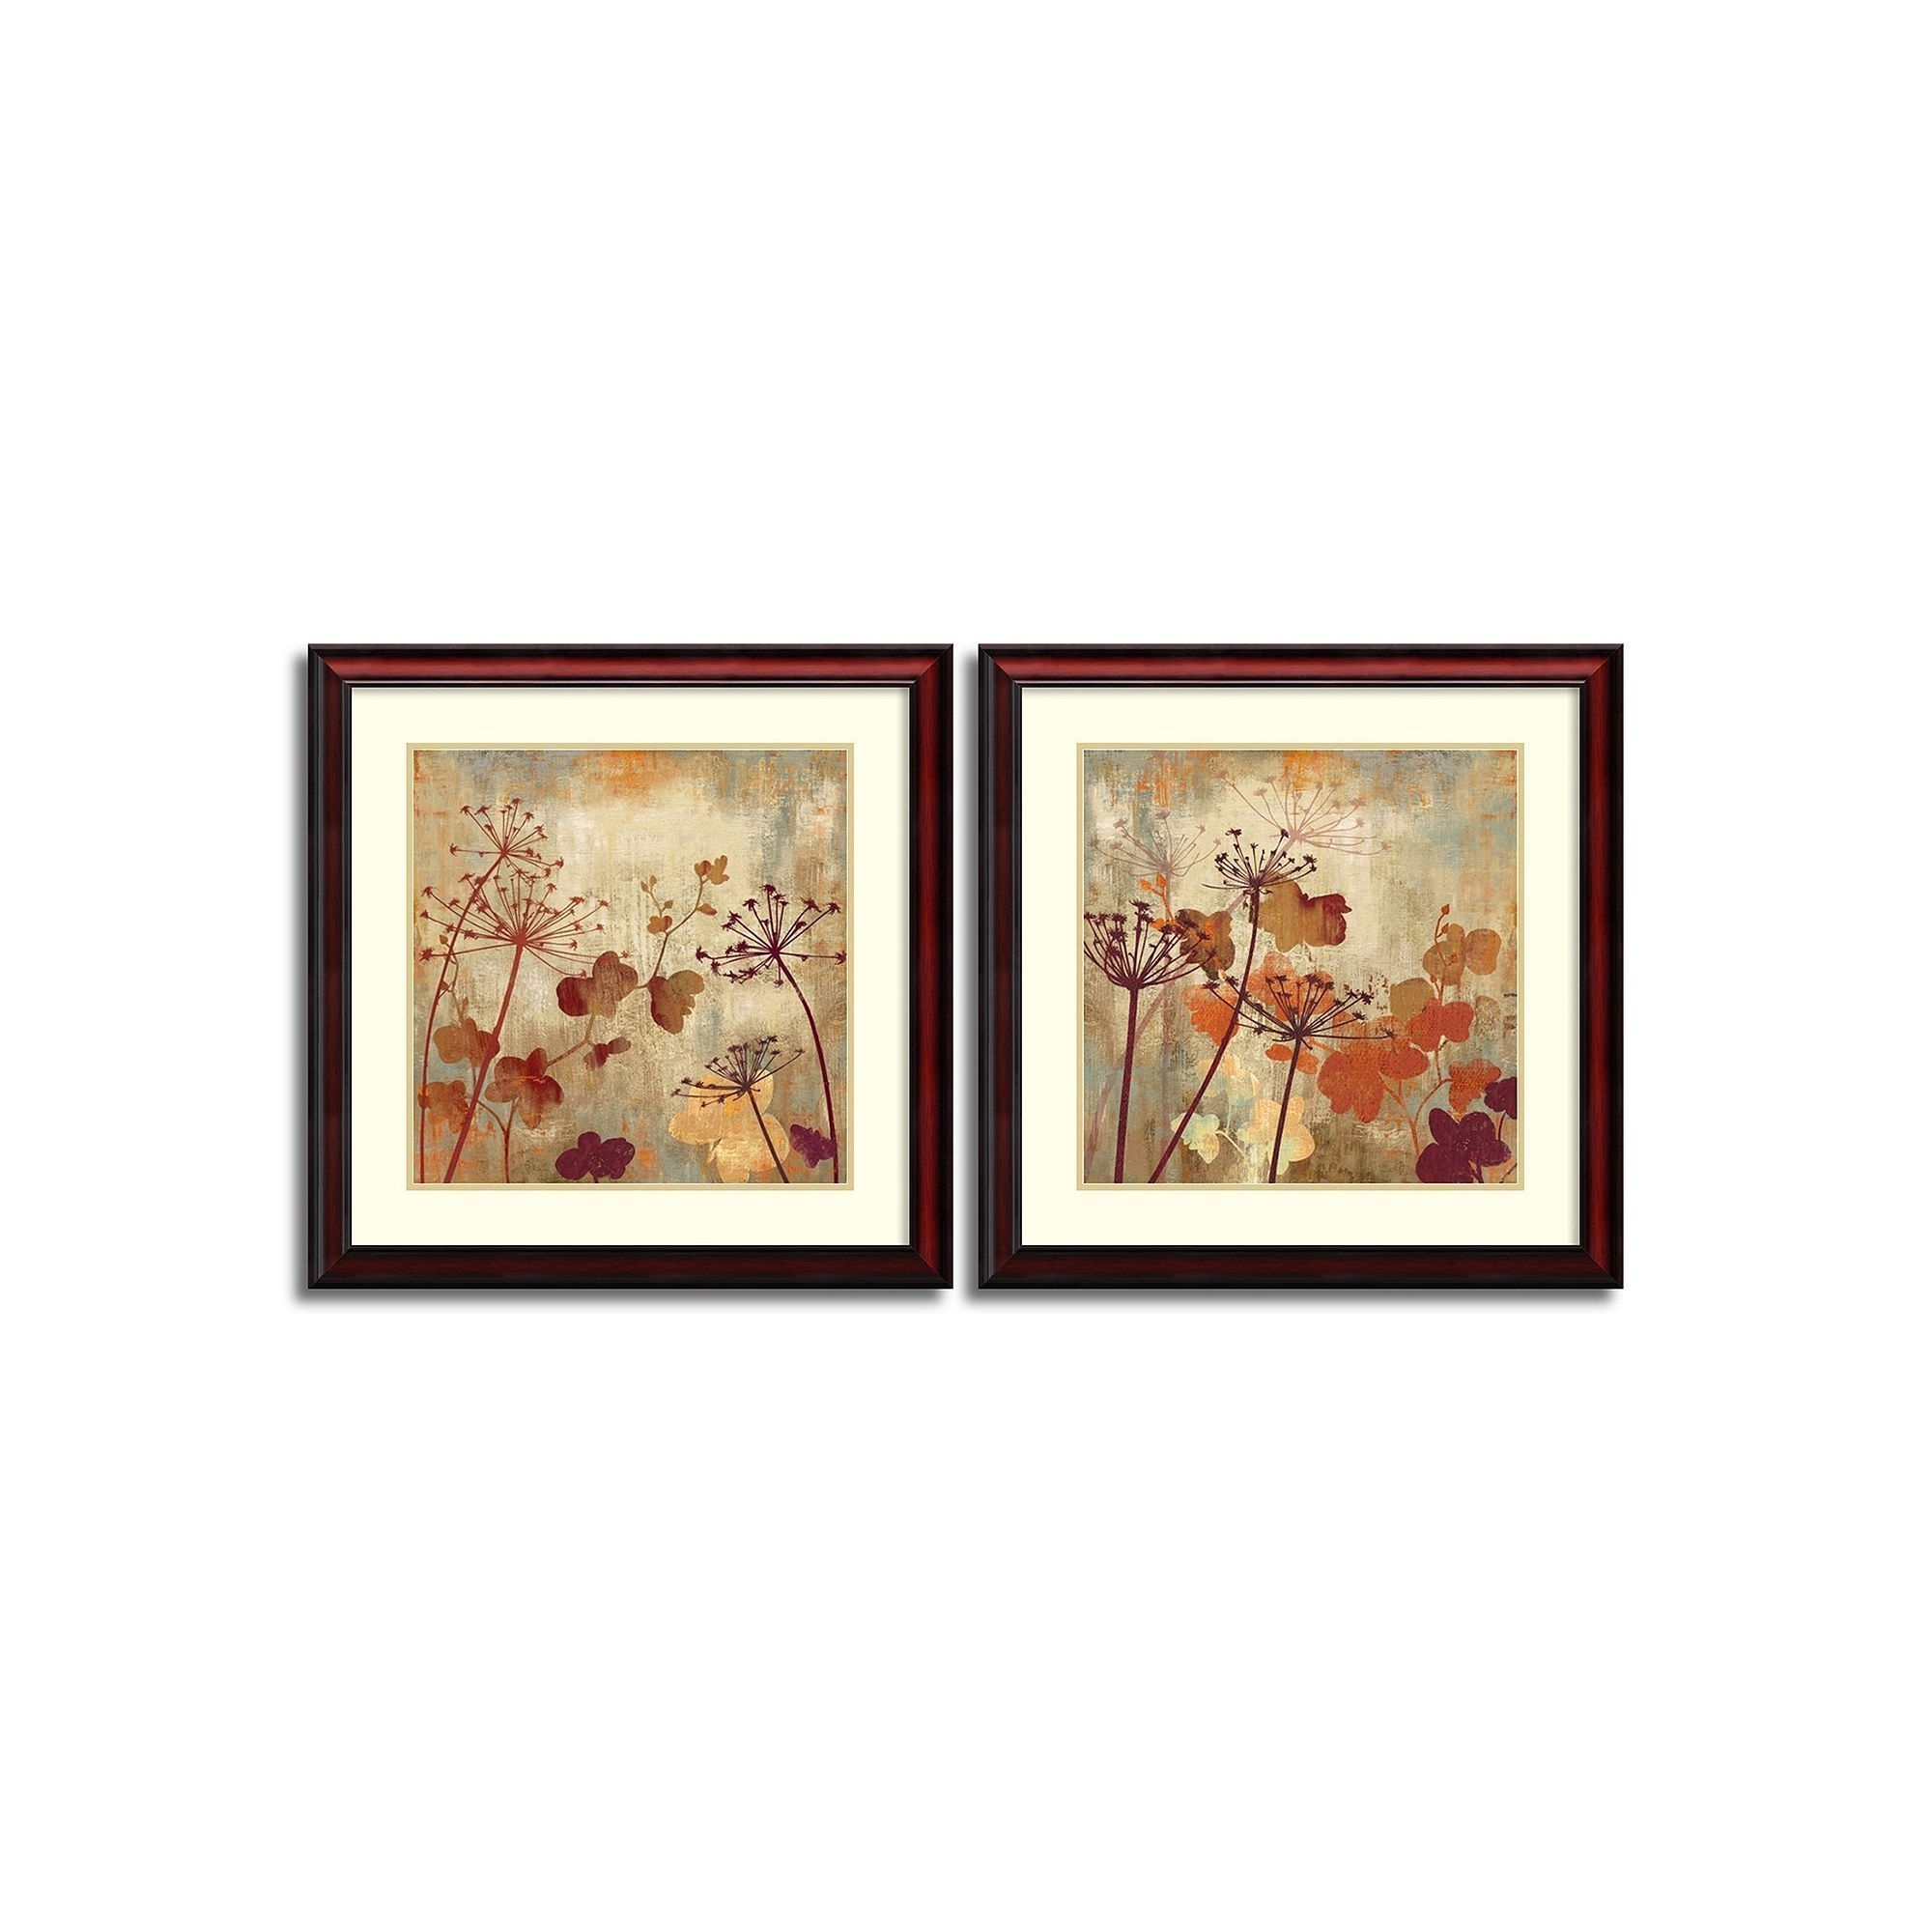 Well Known Fascinating Framed Wall Art Sets 5 Smart Design Canvas Home Throughout Wall Art Sets (Gallery 15 of 15)